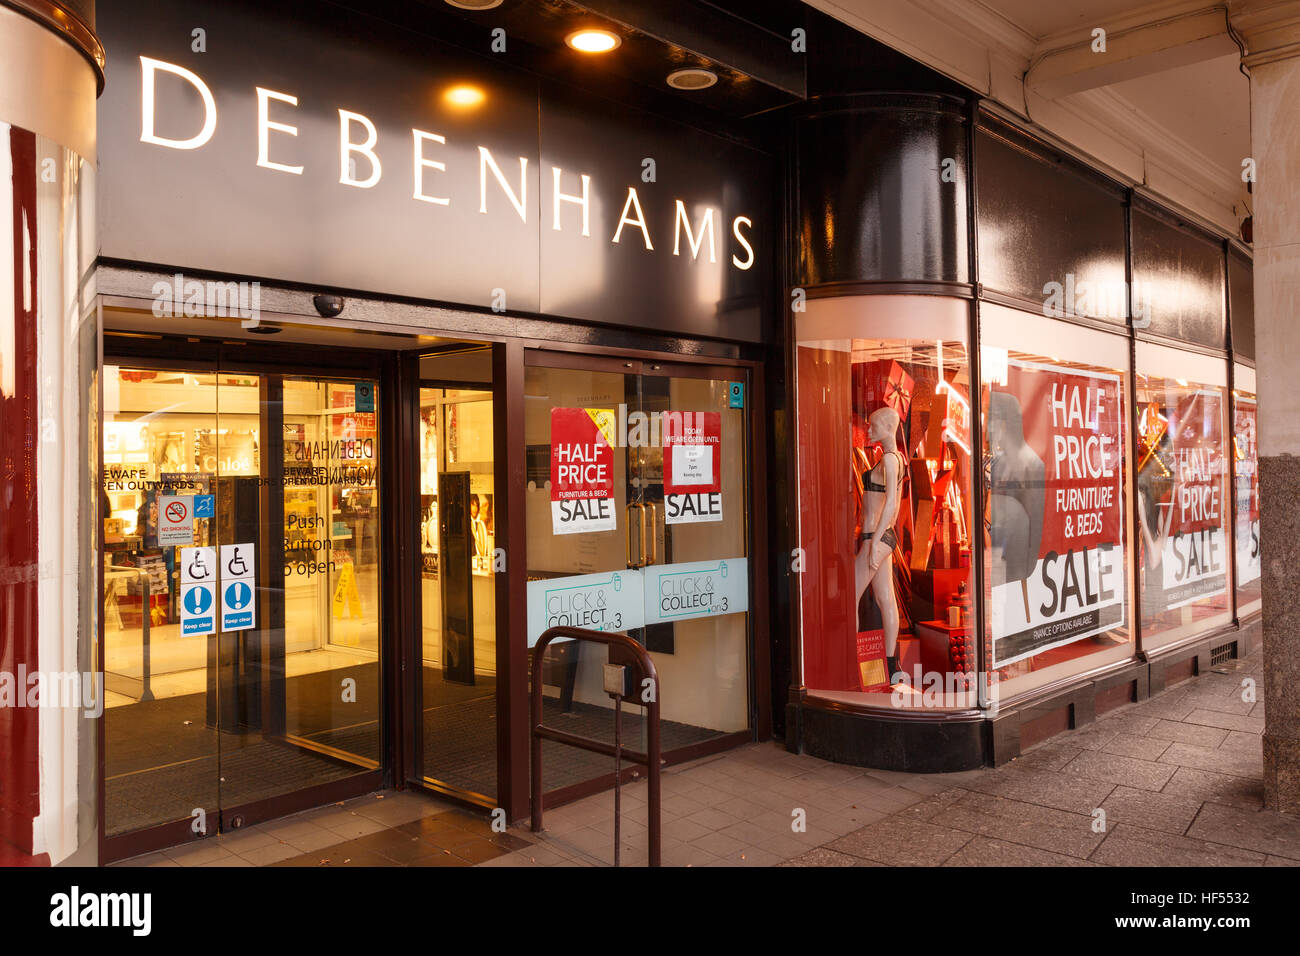 Debenhams Nottingham on Boxing Day sales showing sales posters. In Nottingham, England. On 26th December 2016. - Stock Image